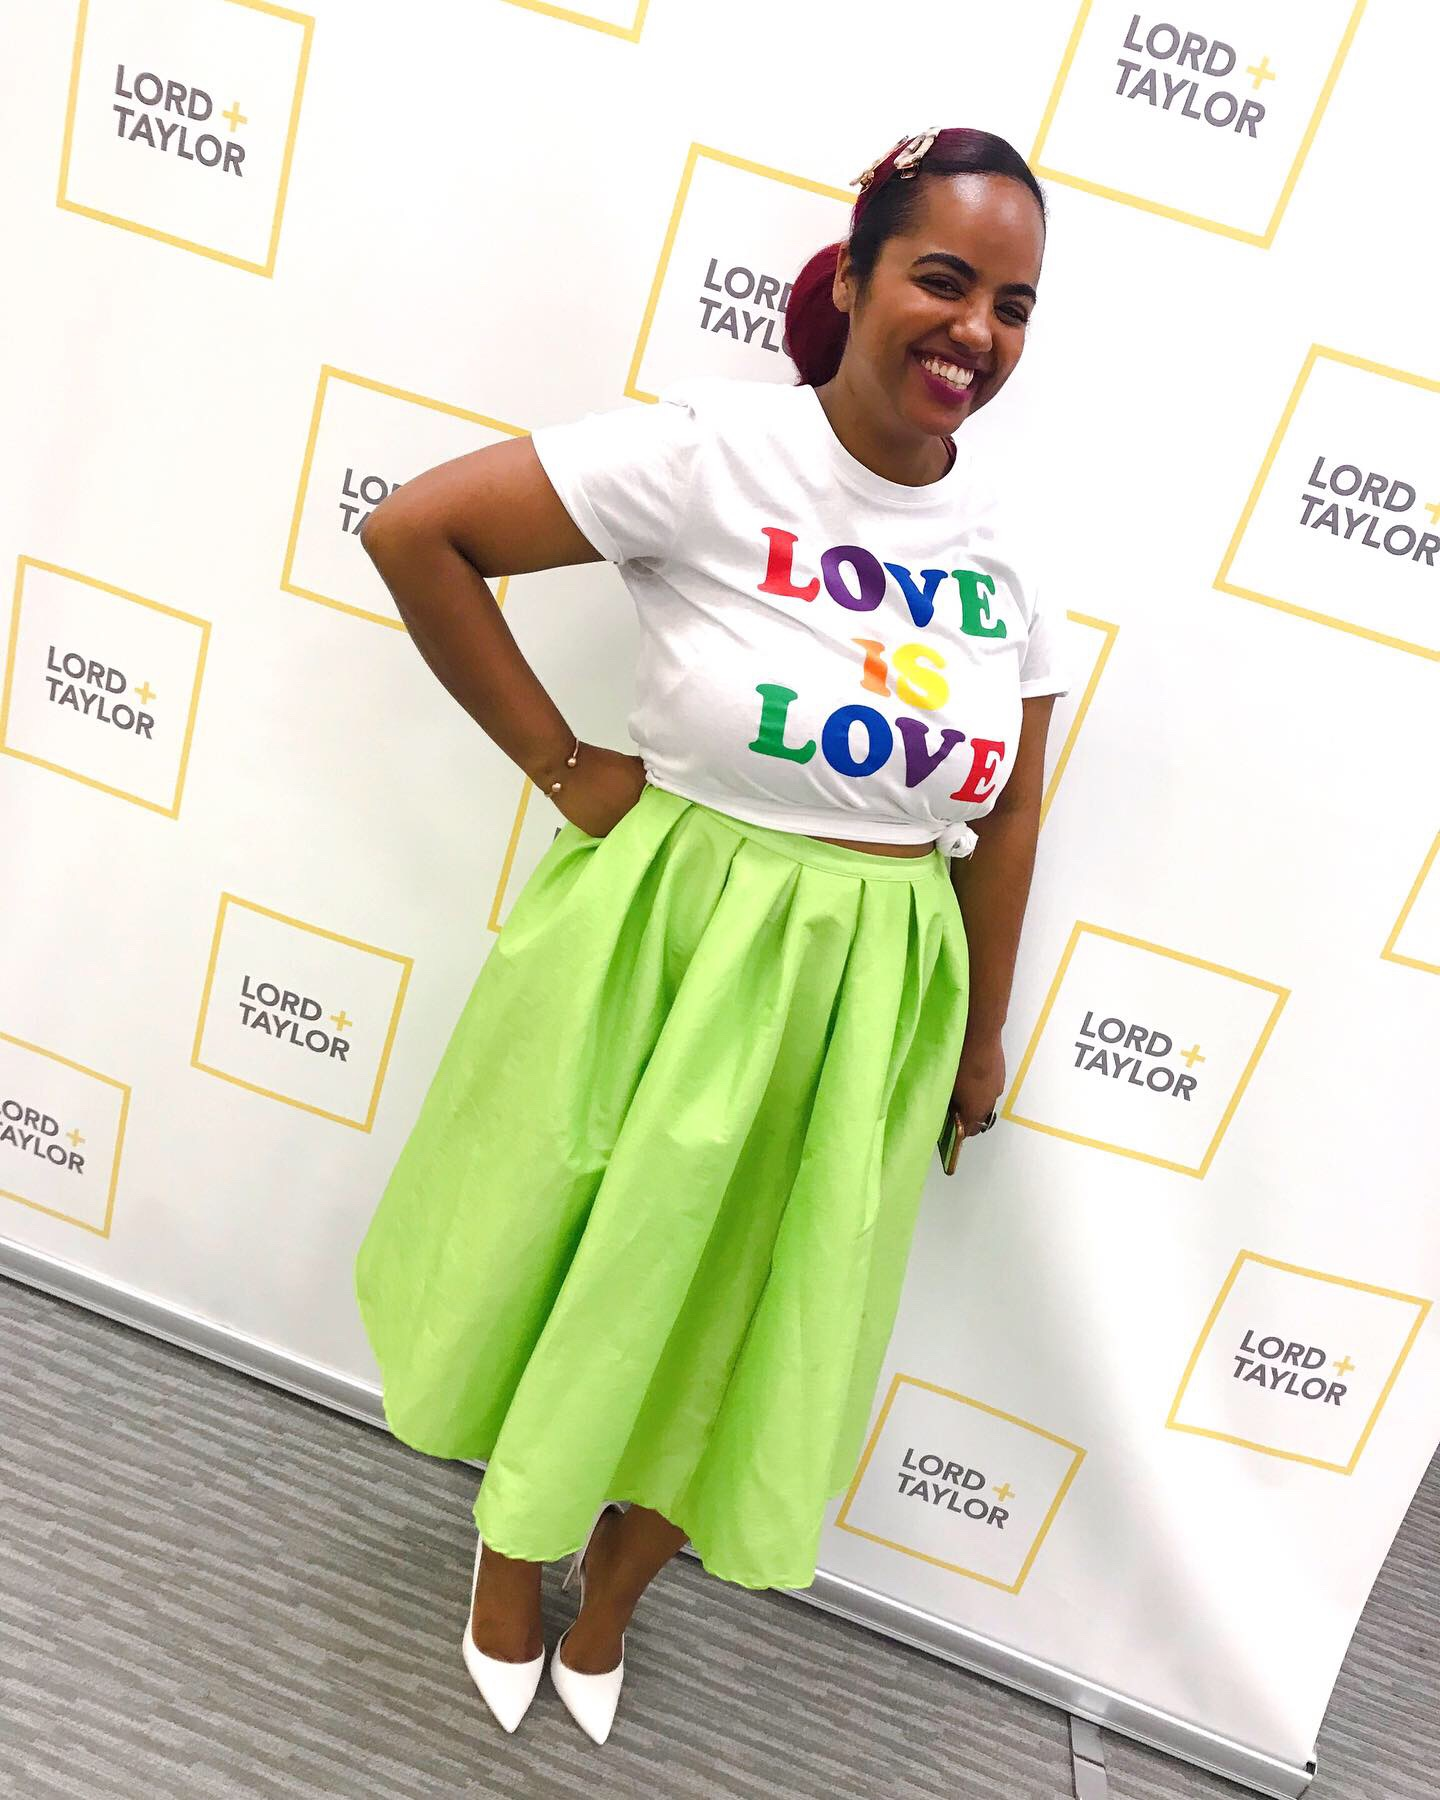 Top : Lord & Taylor - Pride Collection  Skirt : SheInside  Shoes:  Jessica Simpson